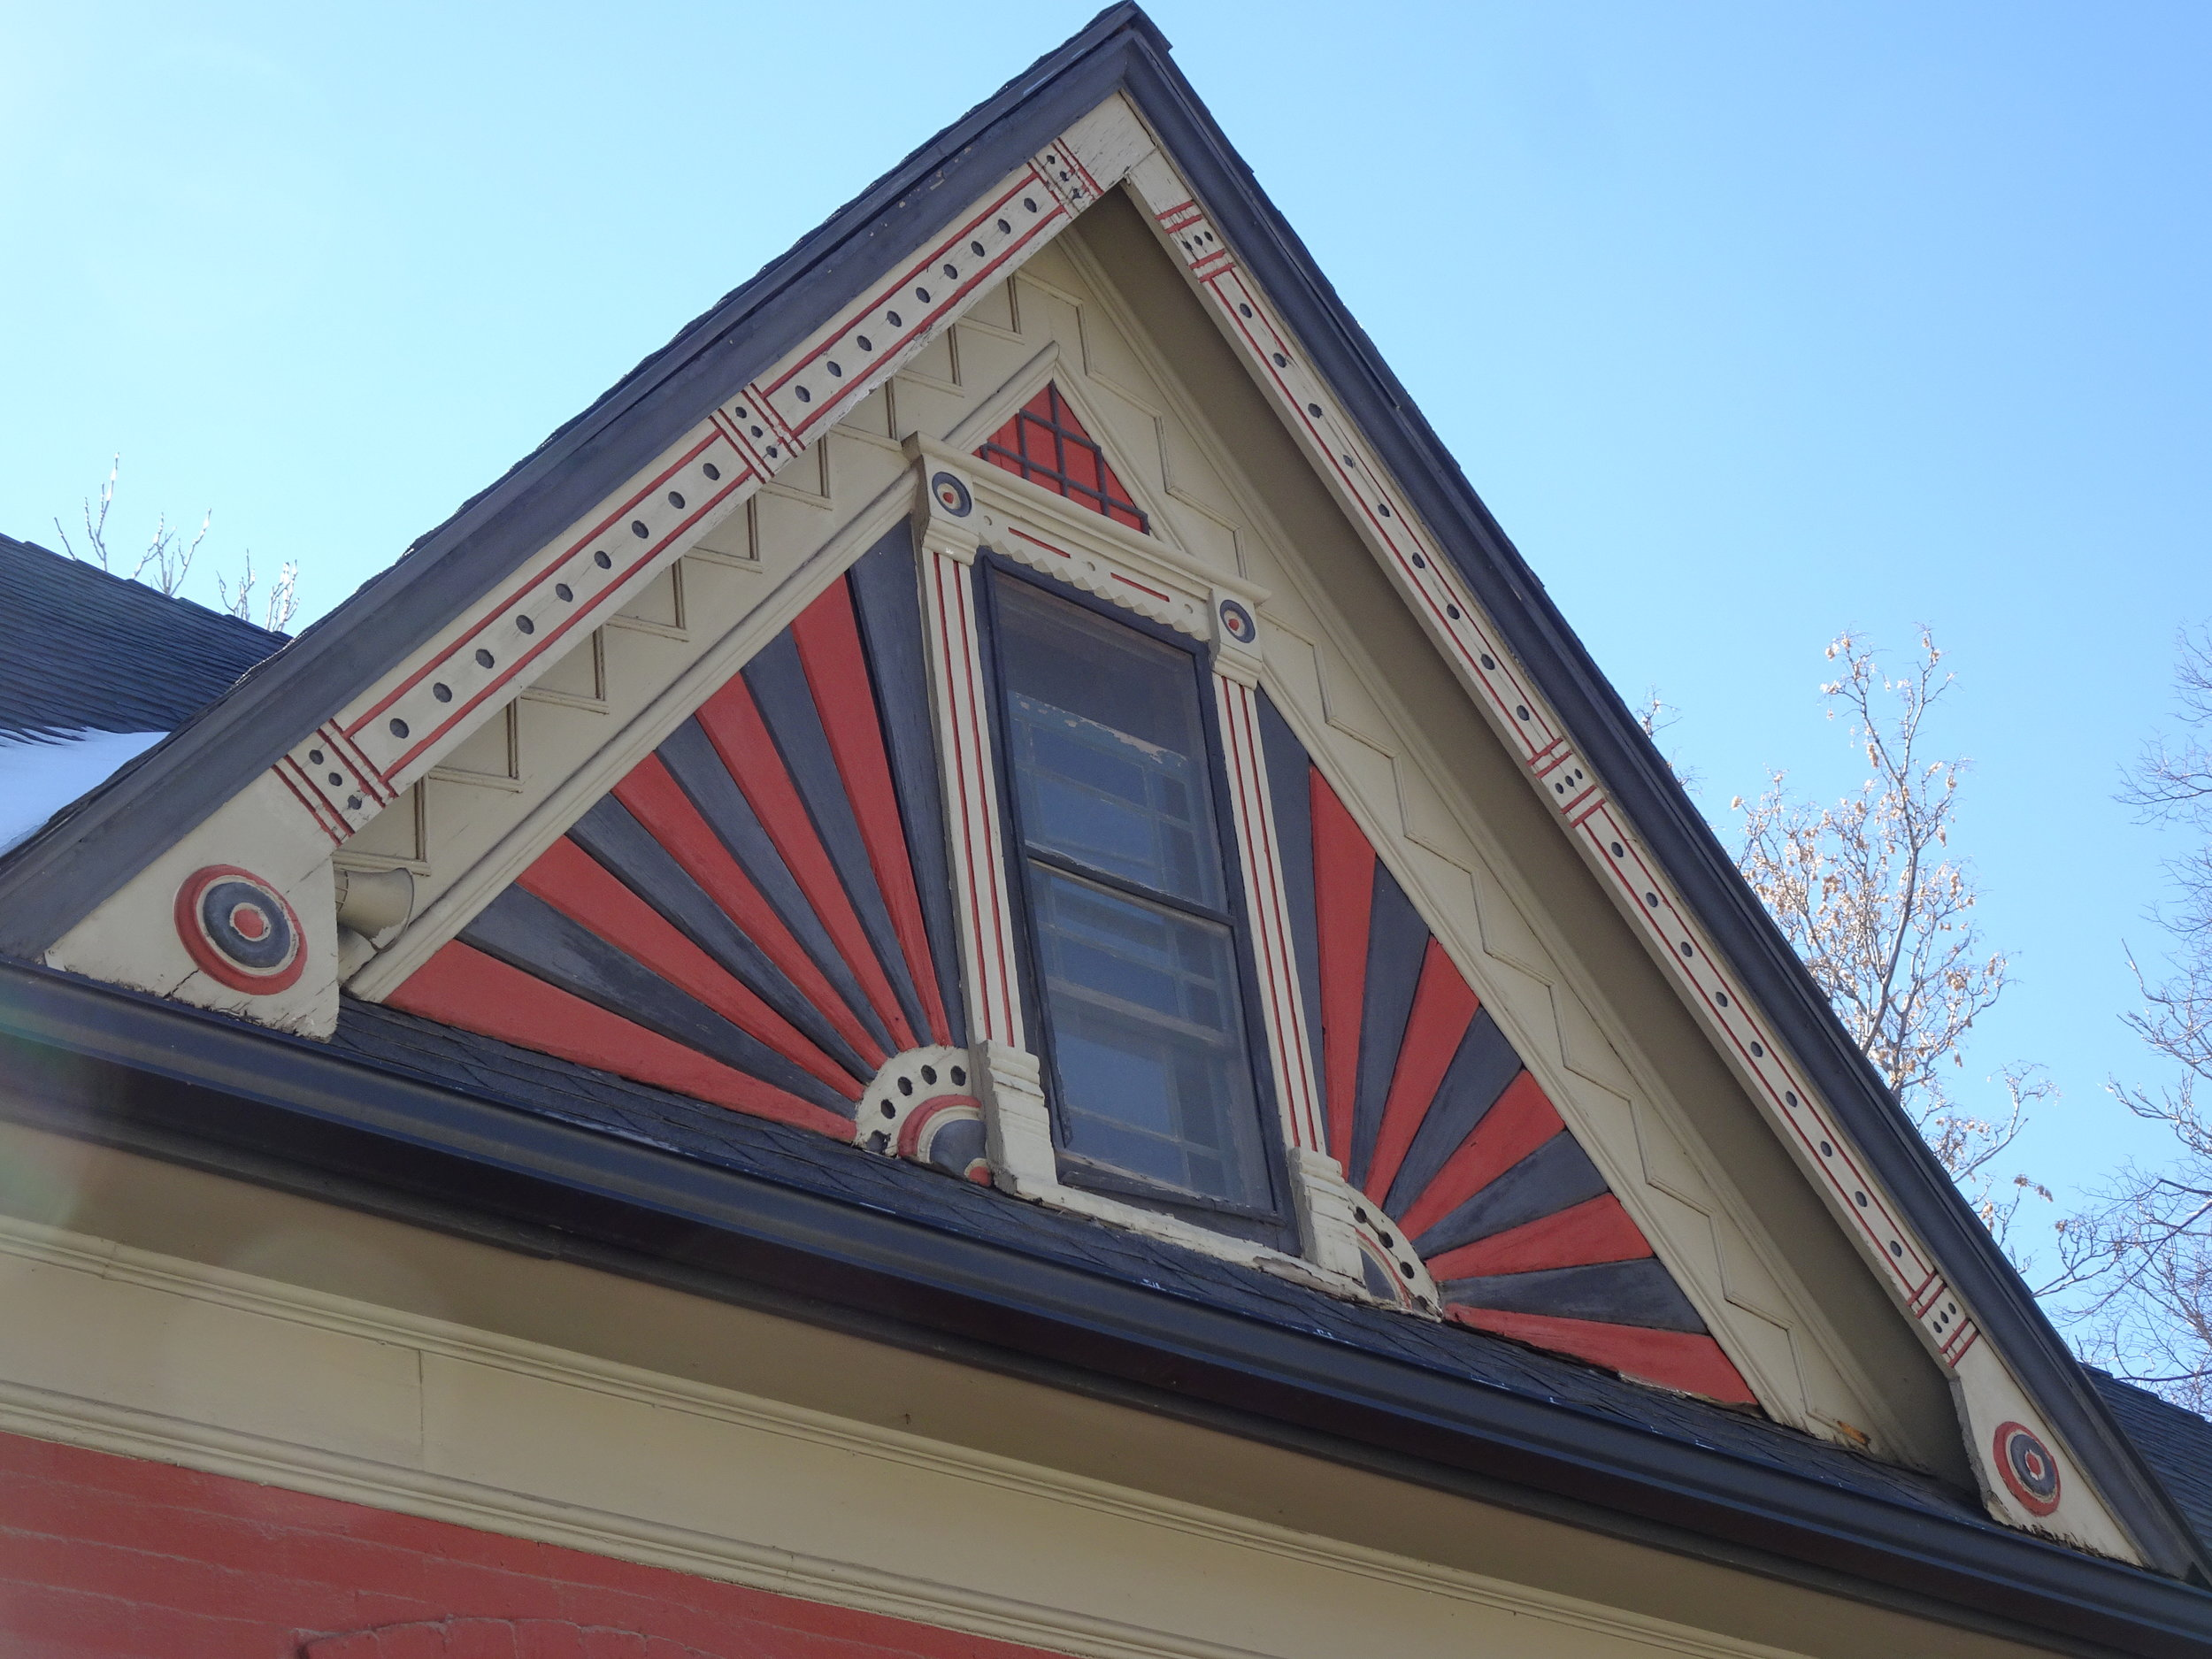 Keep gable end trim in good repair since it adds character and charm to a historic home.